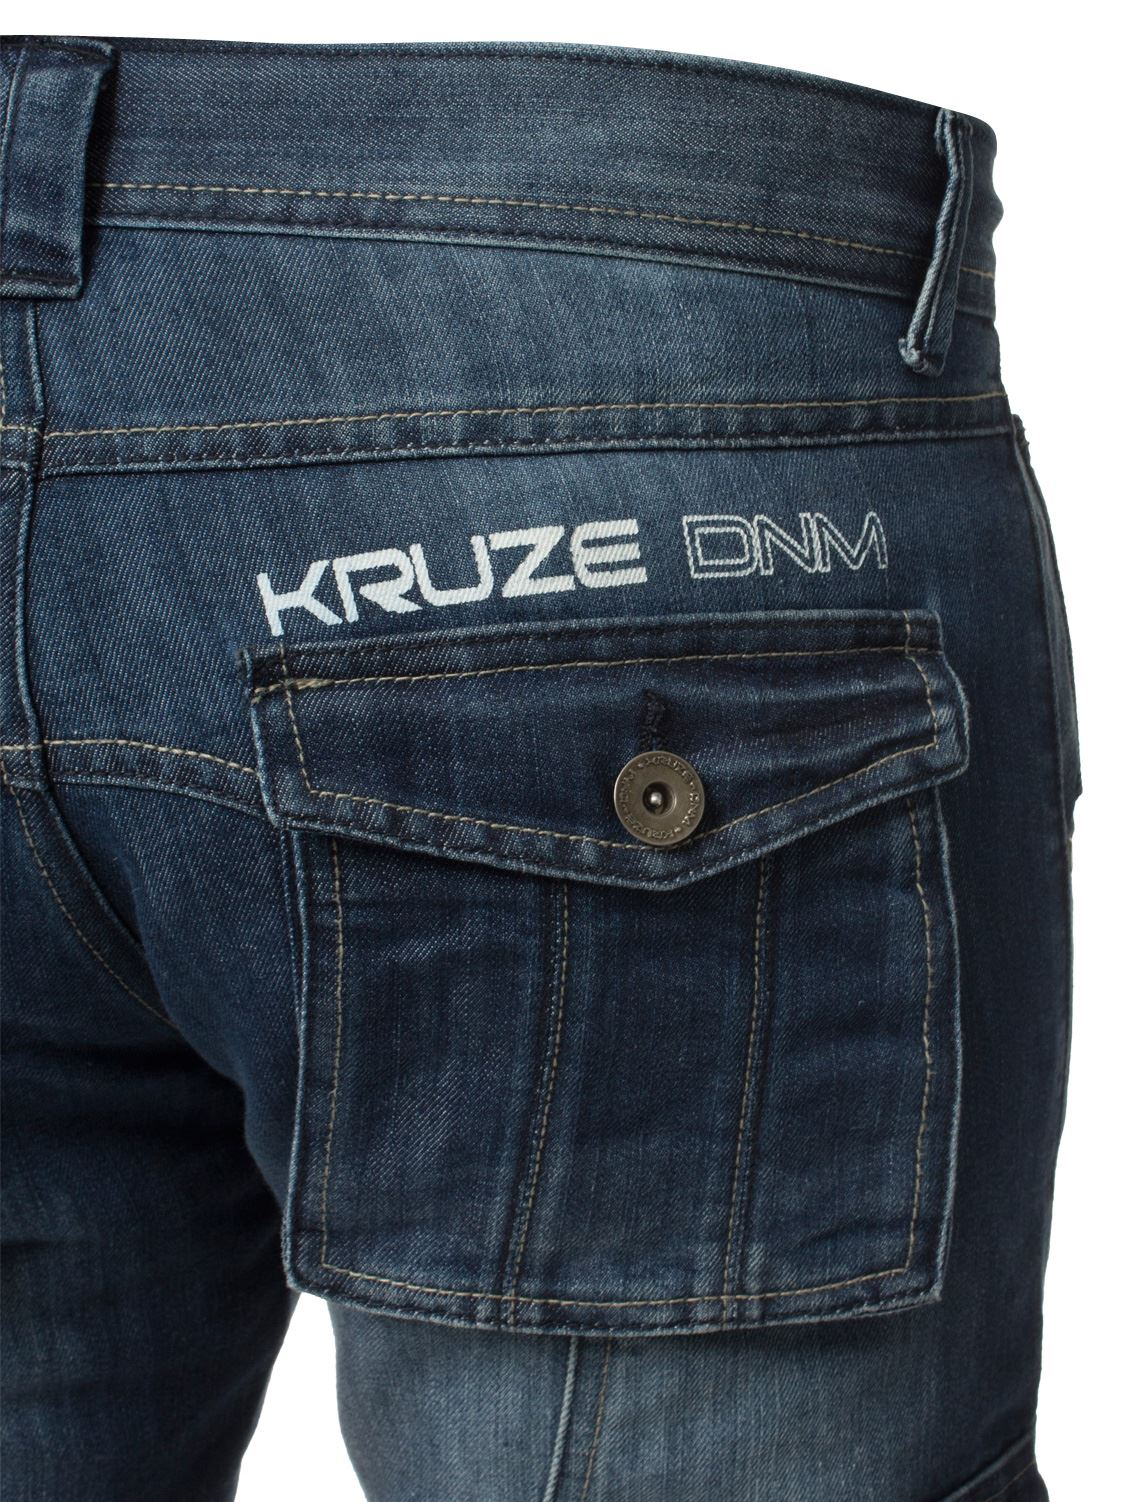 KRUZE-Mens-Combat-Jeans-Casual-Cargo-Work-Pants-Denim-Trousers-All-Waist-Sizes thumbnail 16